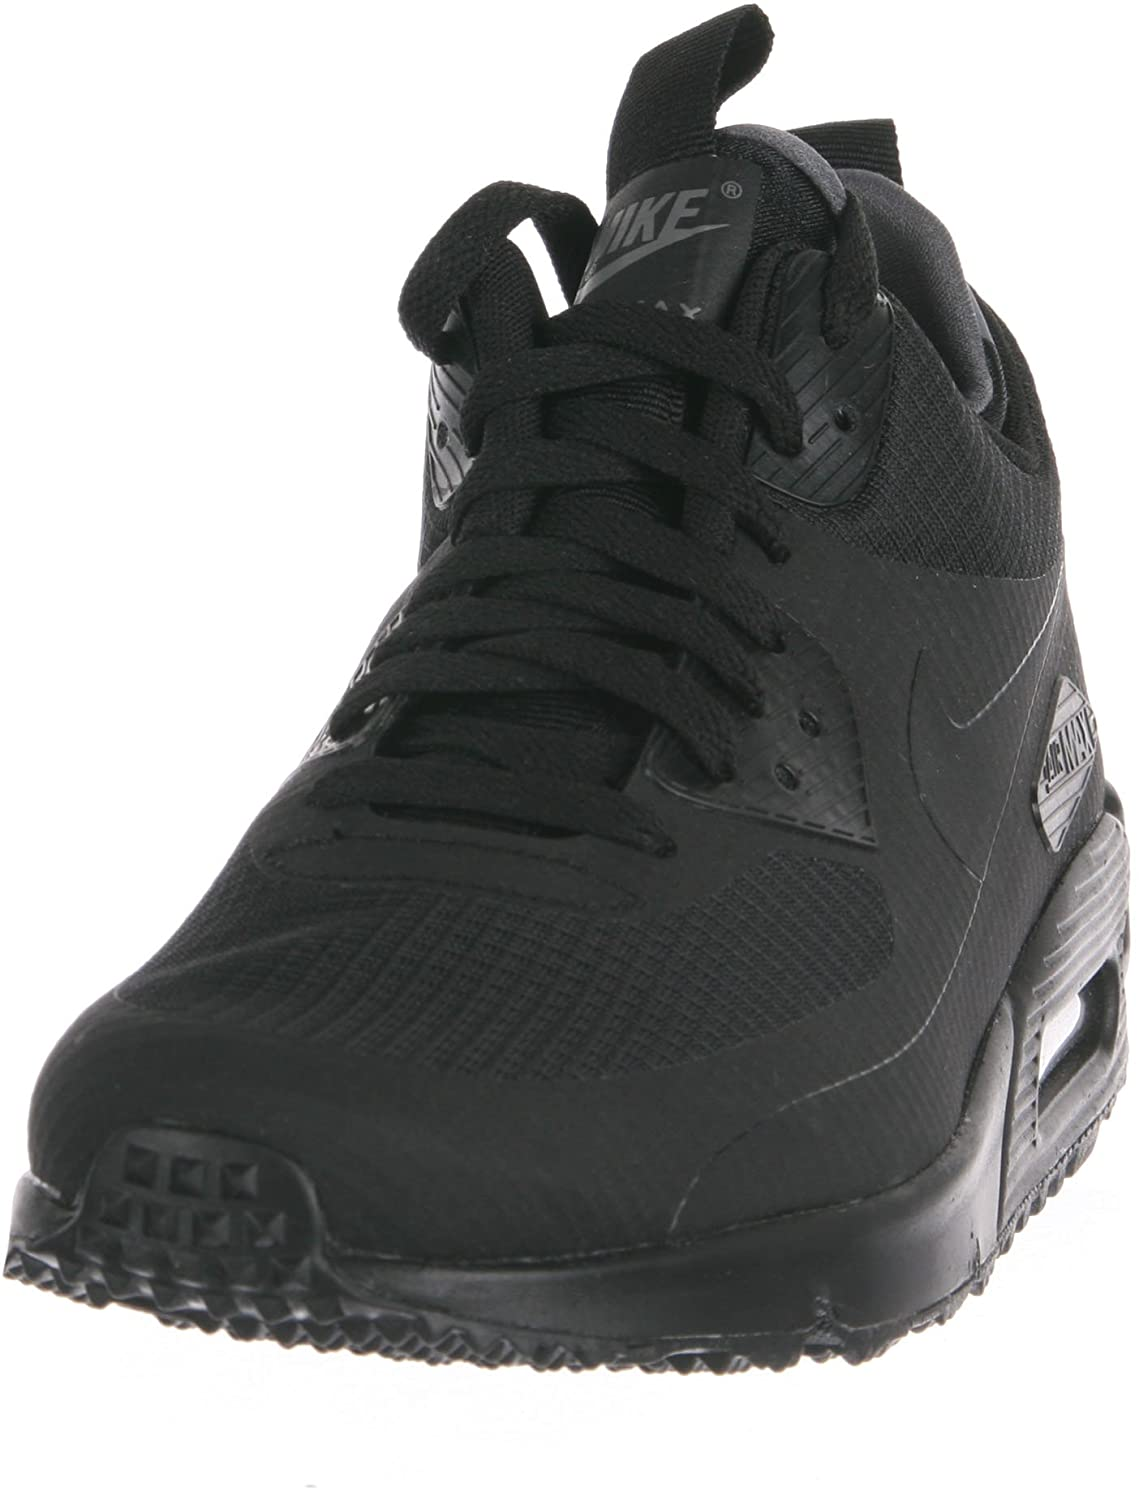 nike air max 90 mid winter mens trainers 806808 sneakers